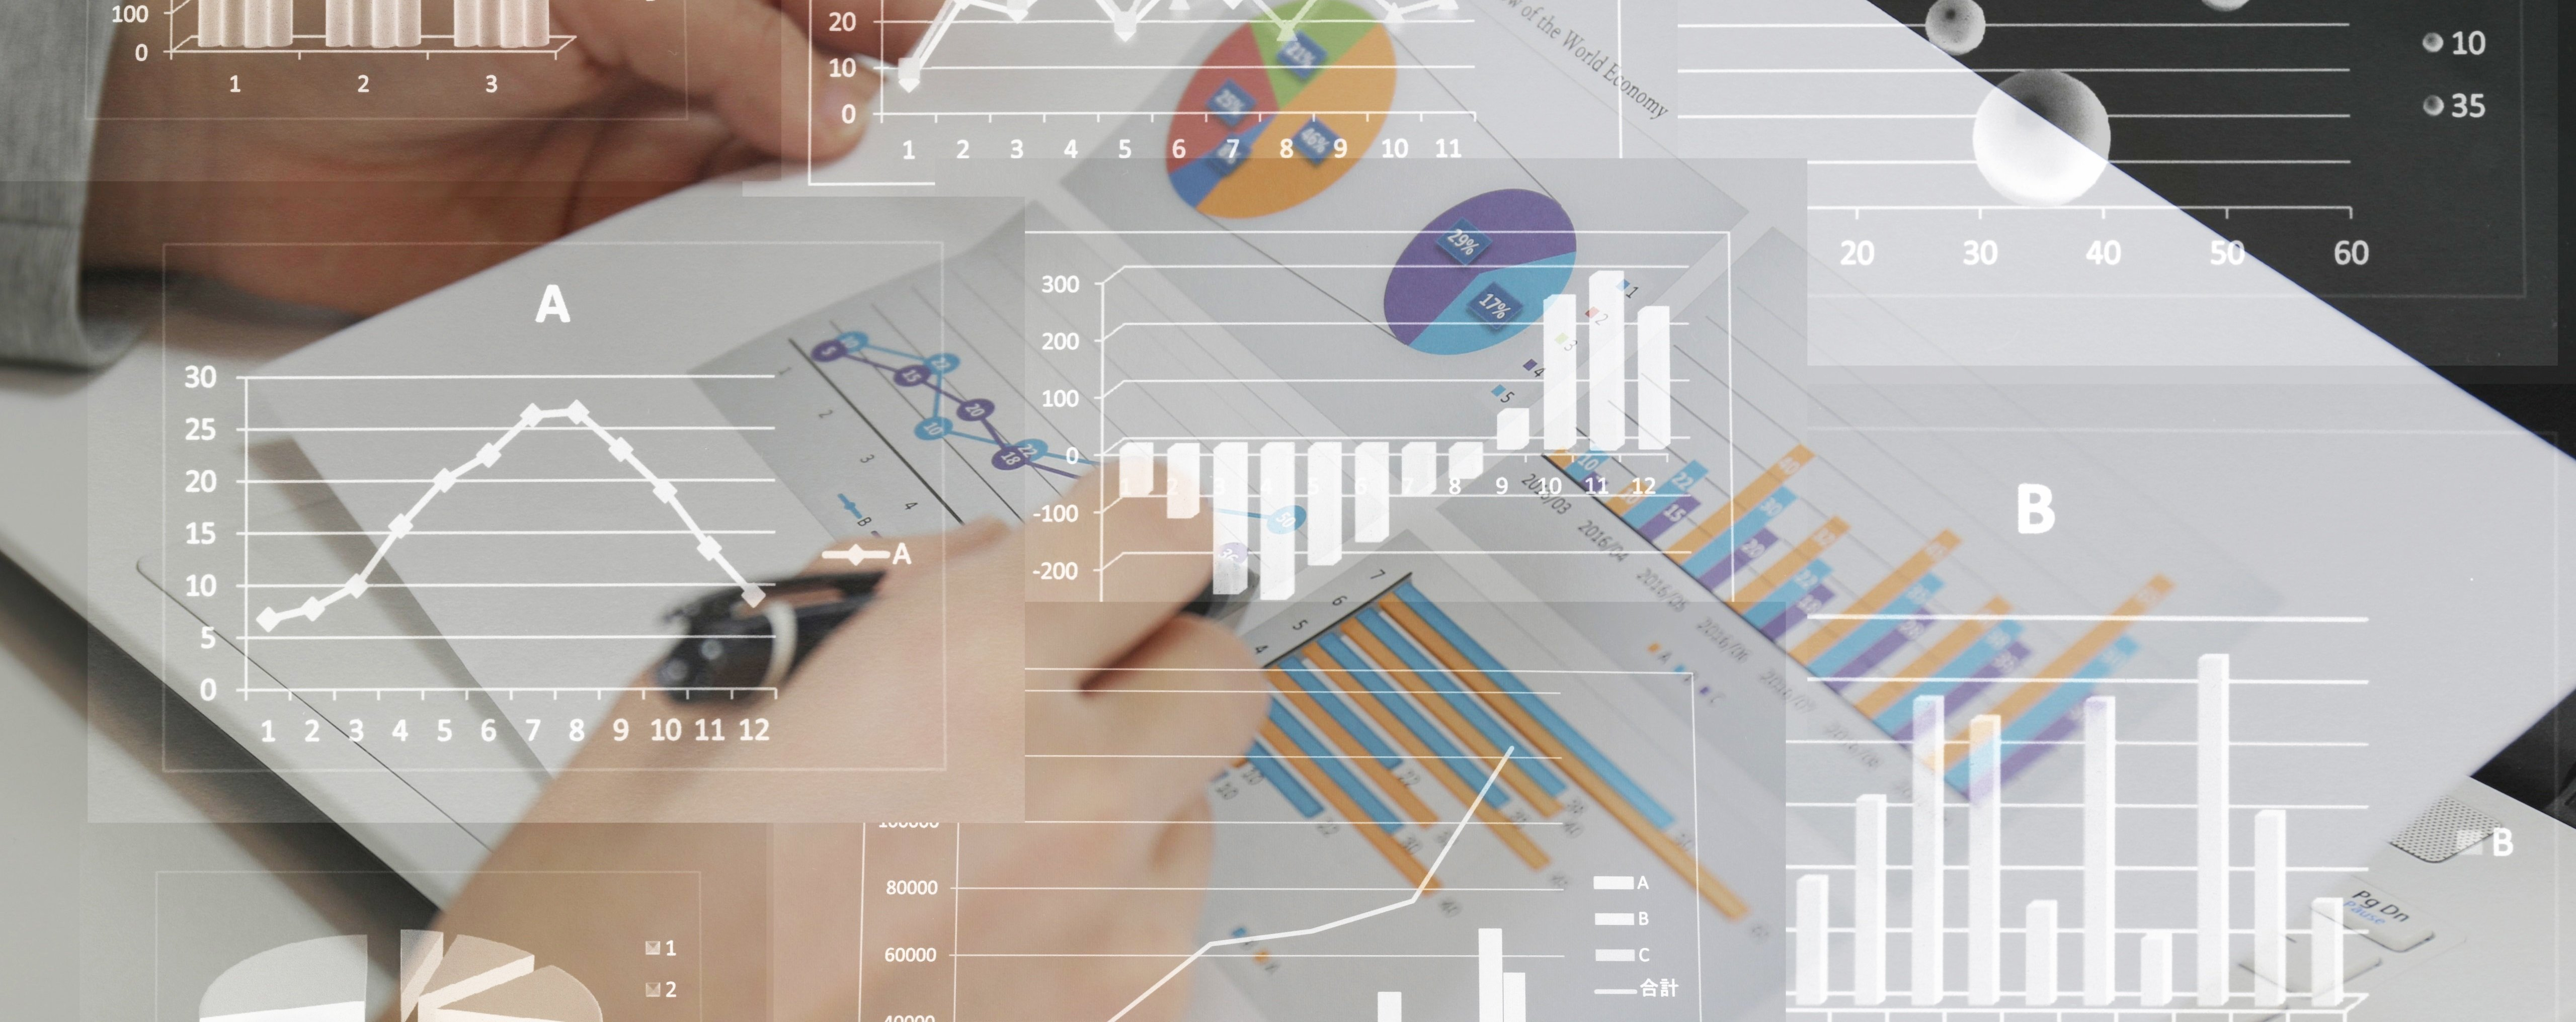 How to Quickly Deploy Self-Service Analytics on a Budget